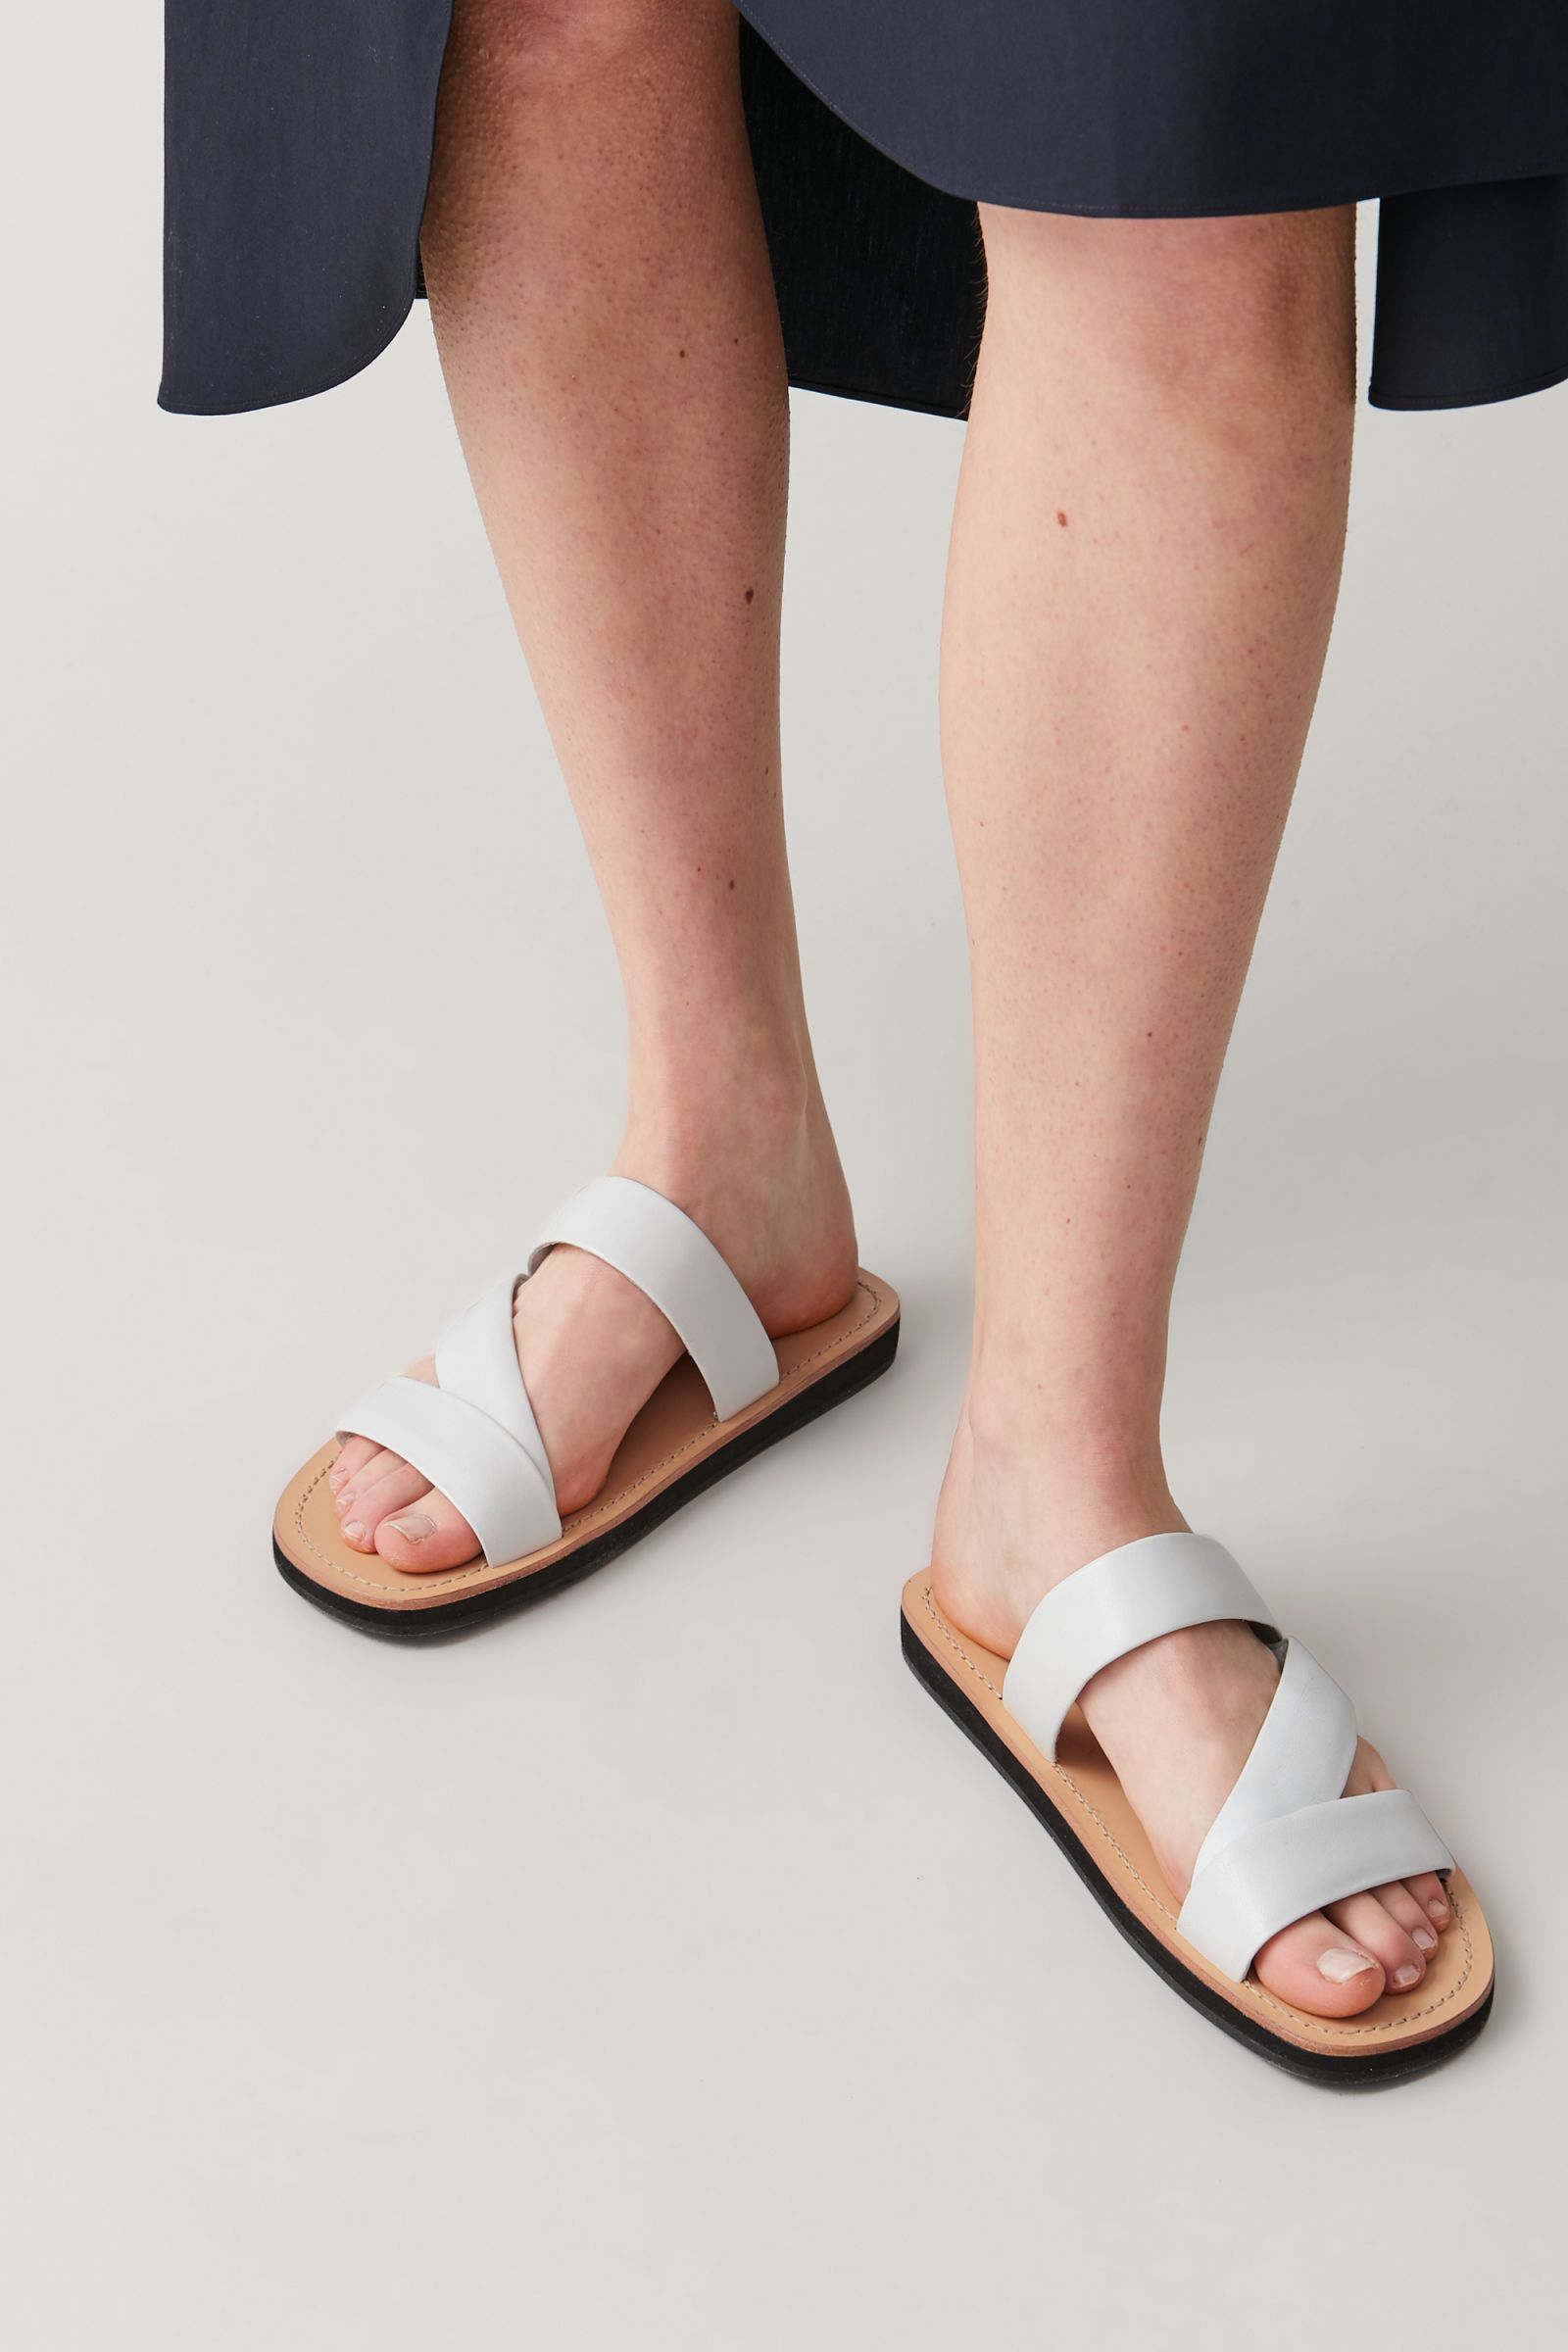 LEATHER STRAP SANDALS in 2020 | Leather